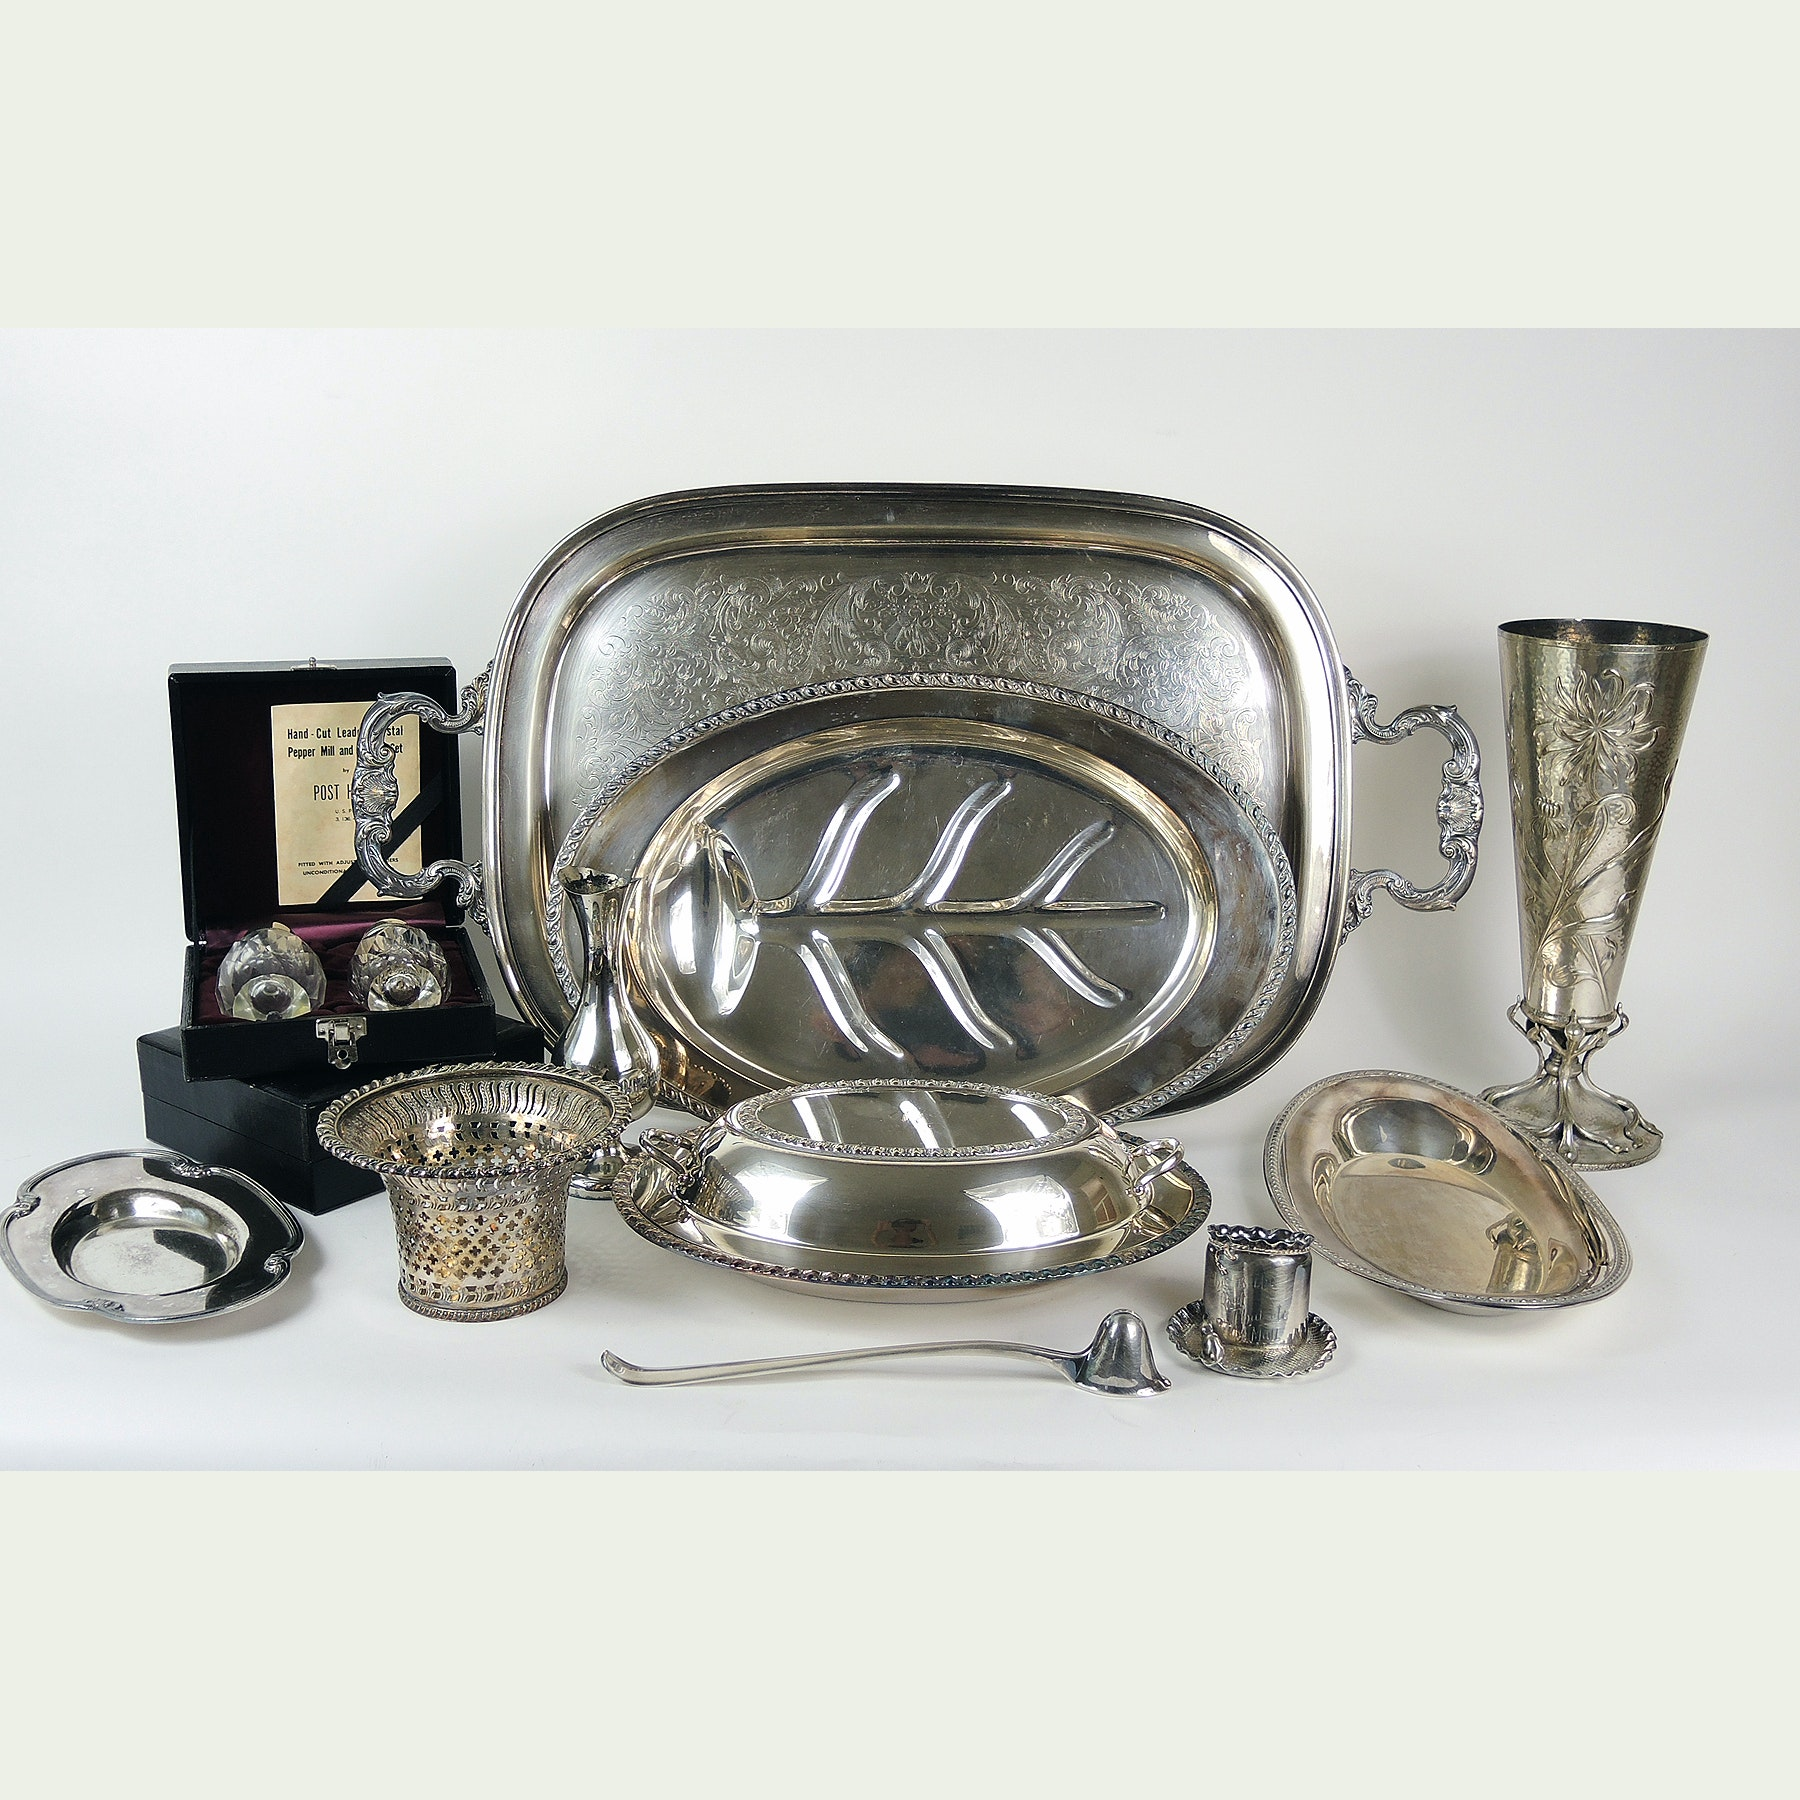 Gorham Tray, Silver Plated Tableware and Decor